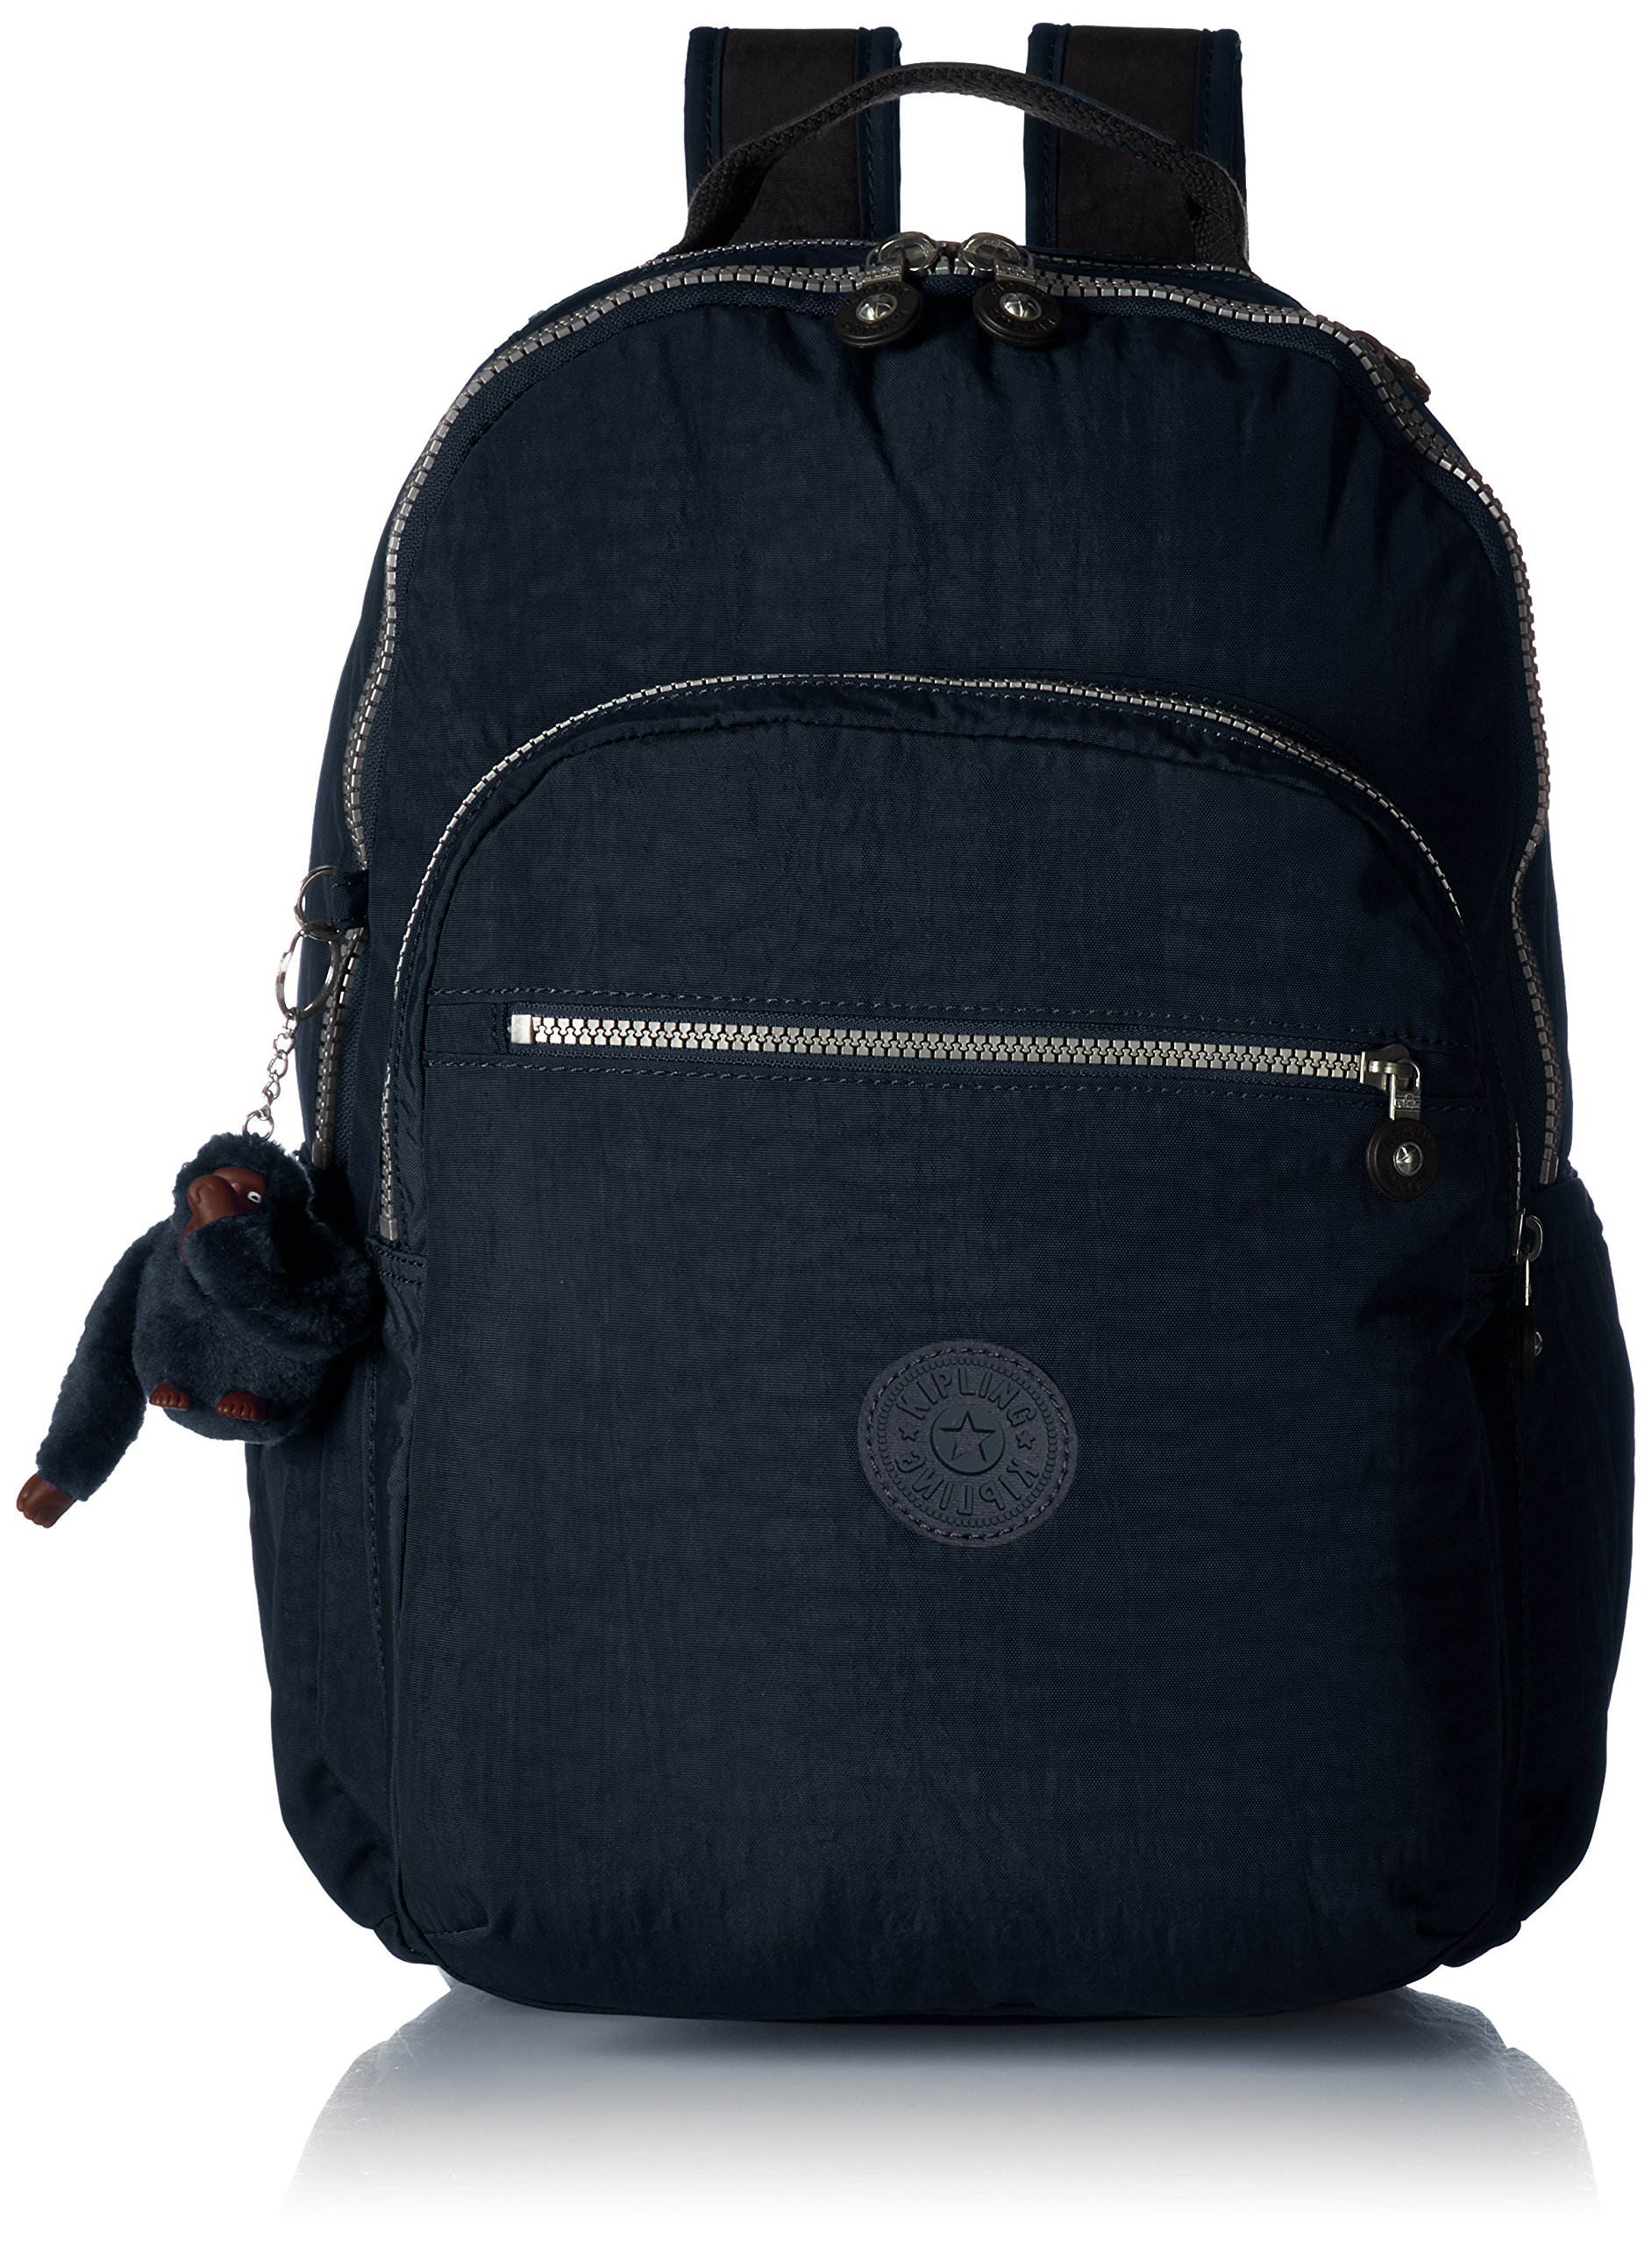 Kipling Seoul Go Laptop, Padded, Adjustable Backpack Straps, Zip Closure, True Blue